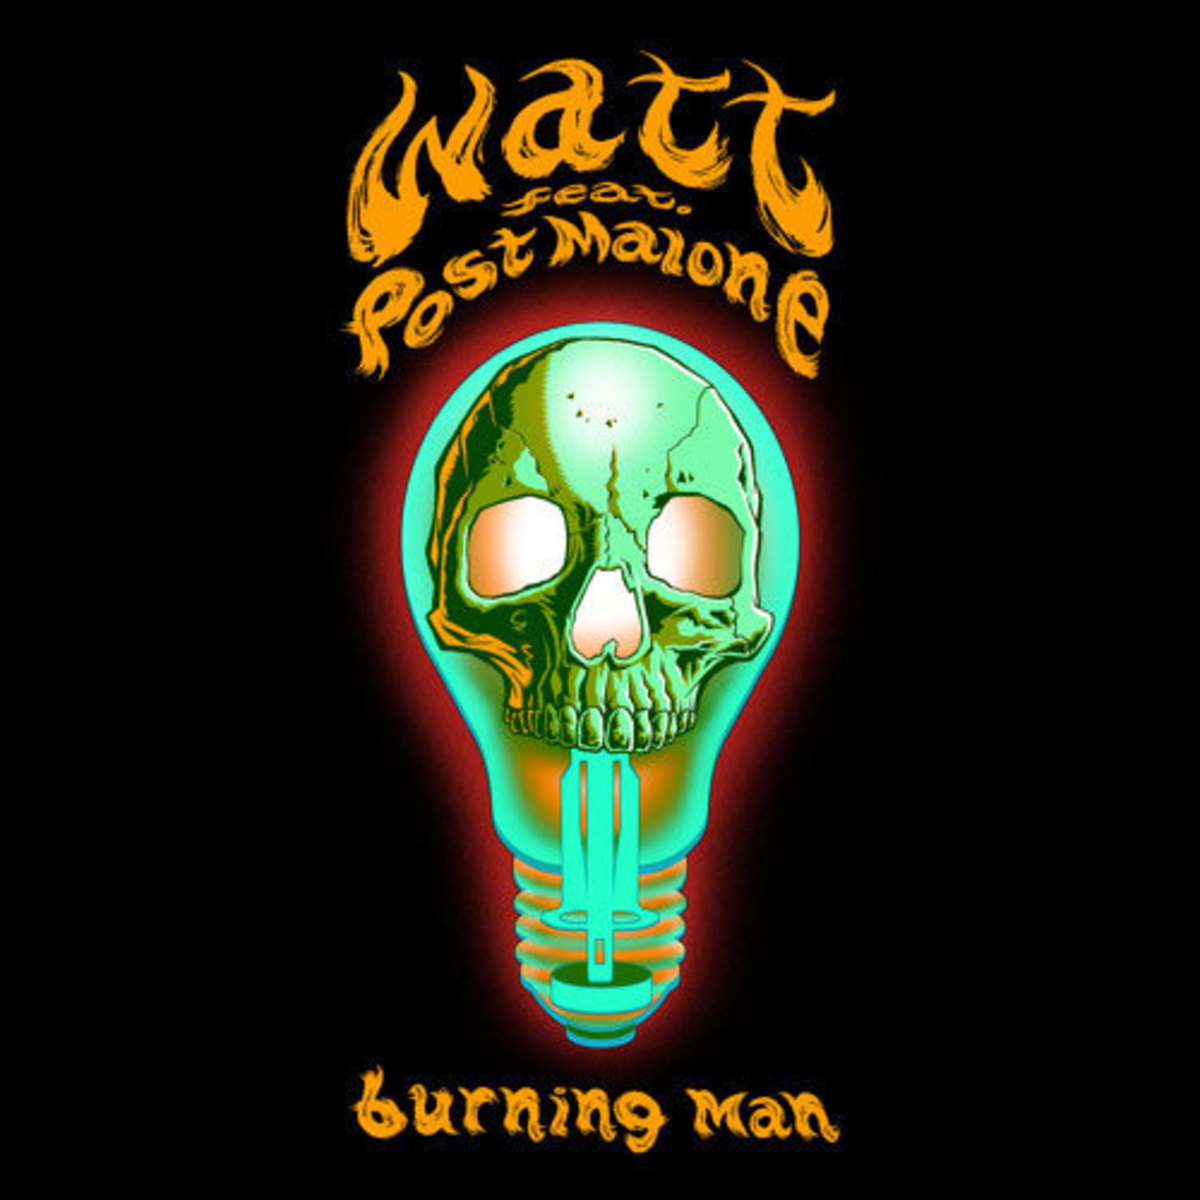 watt-burning-man.jpg